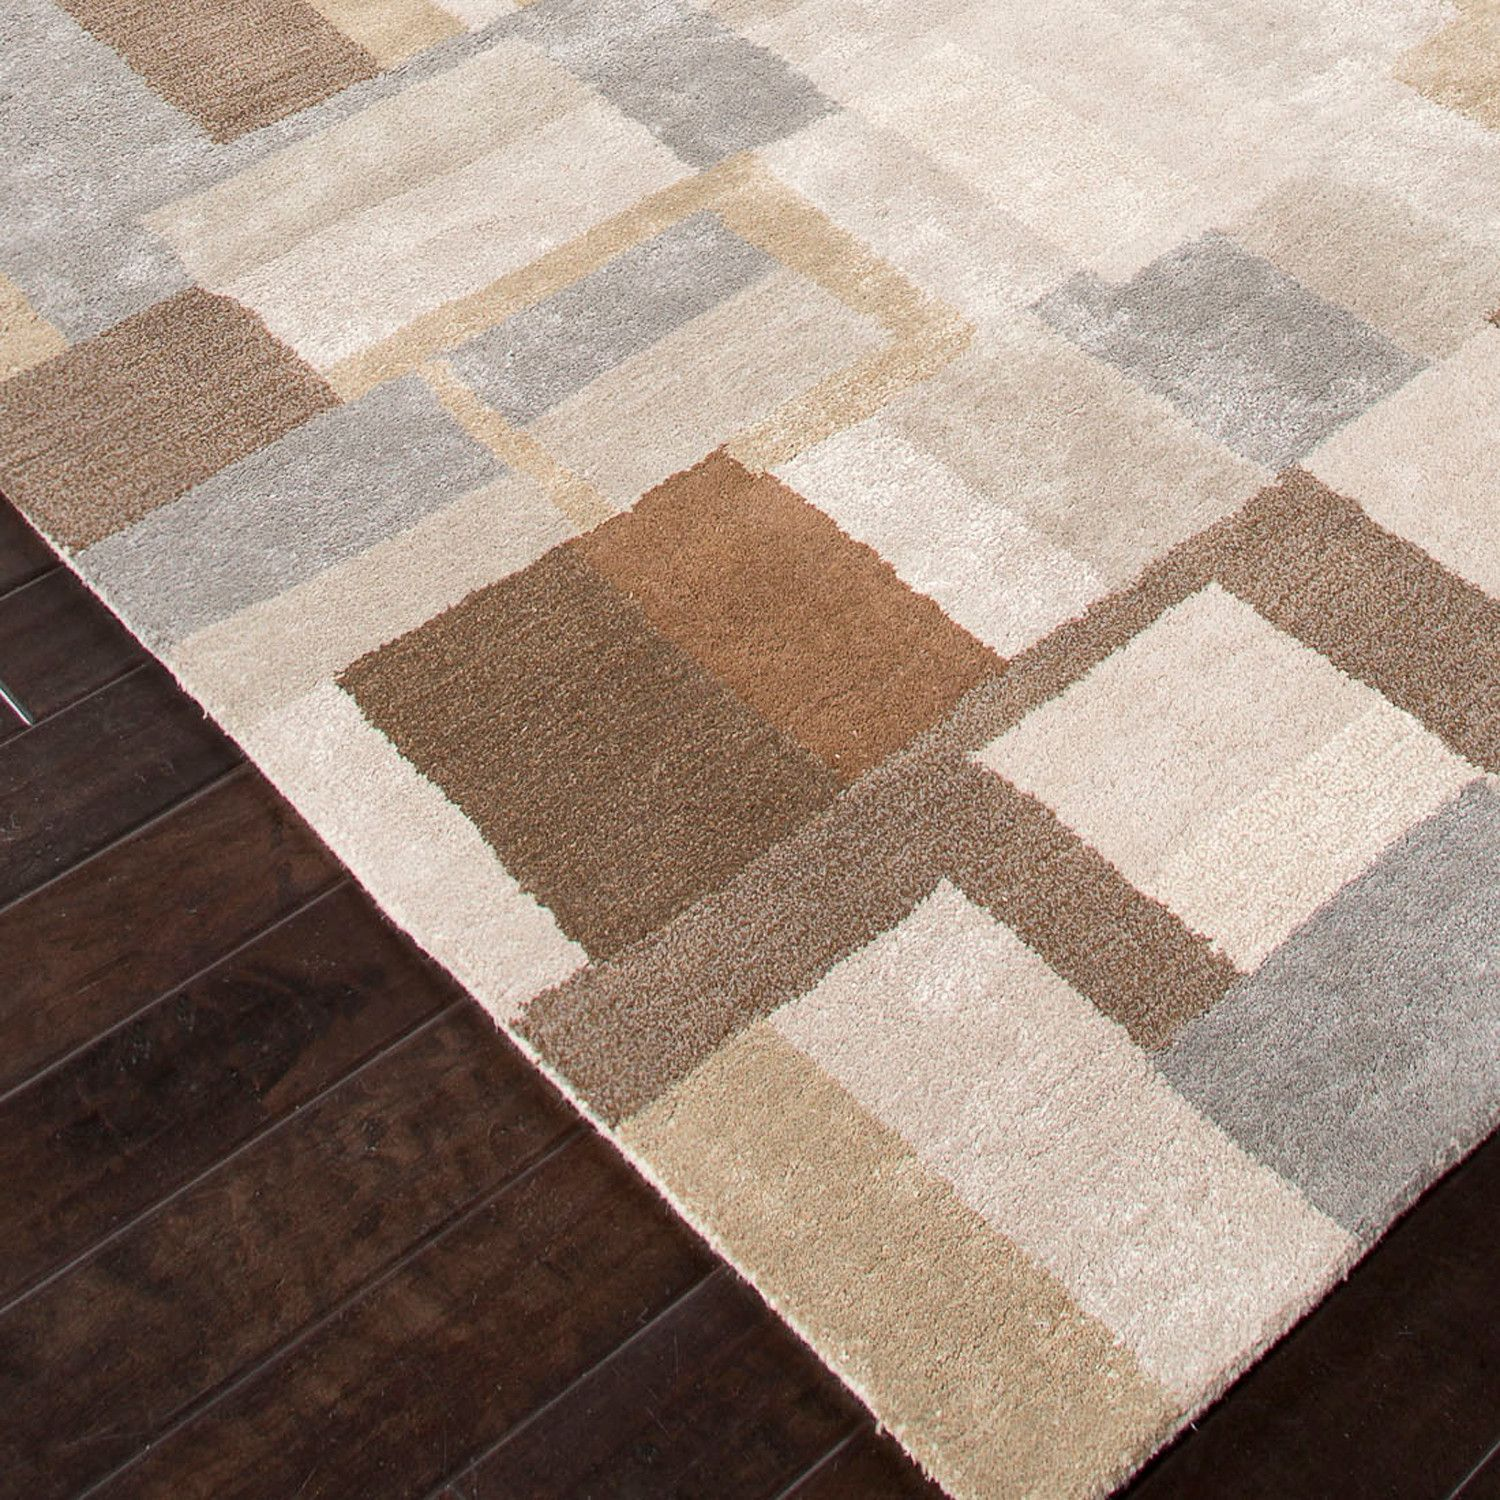 Best Image Result For Brown And Grey Area Rug In 2020 Cream 640 x 480